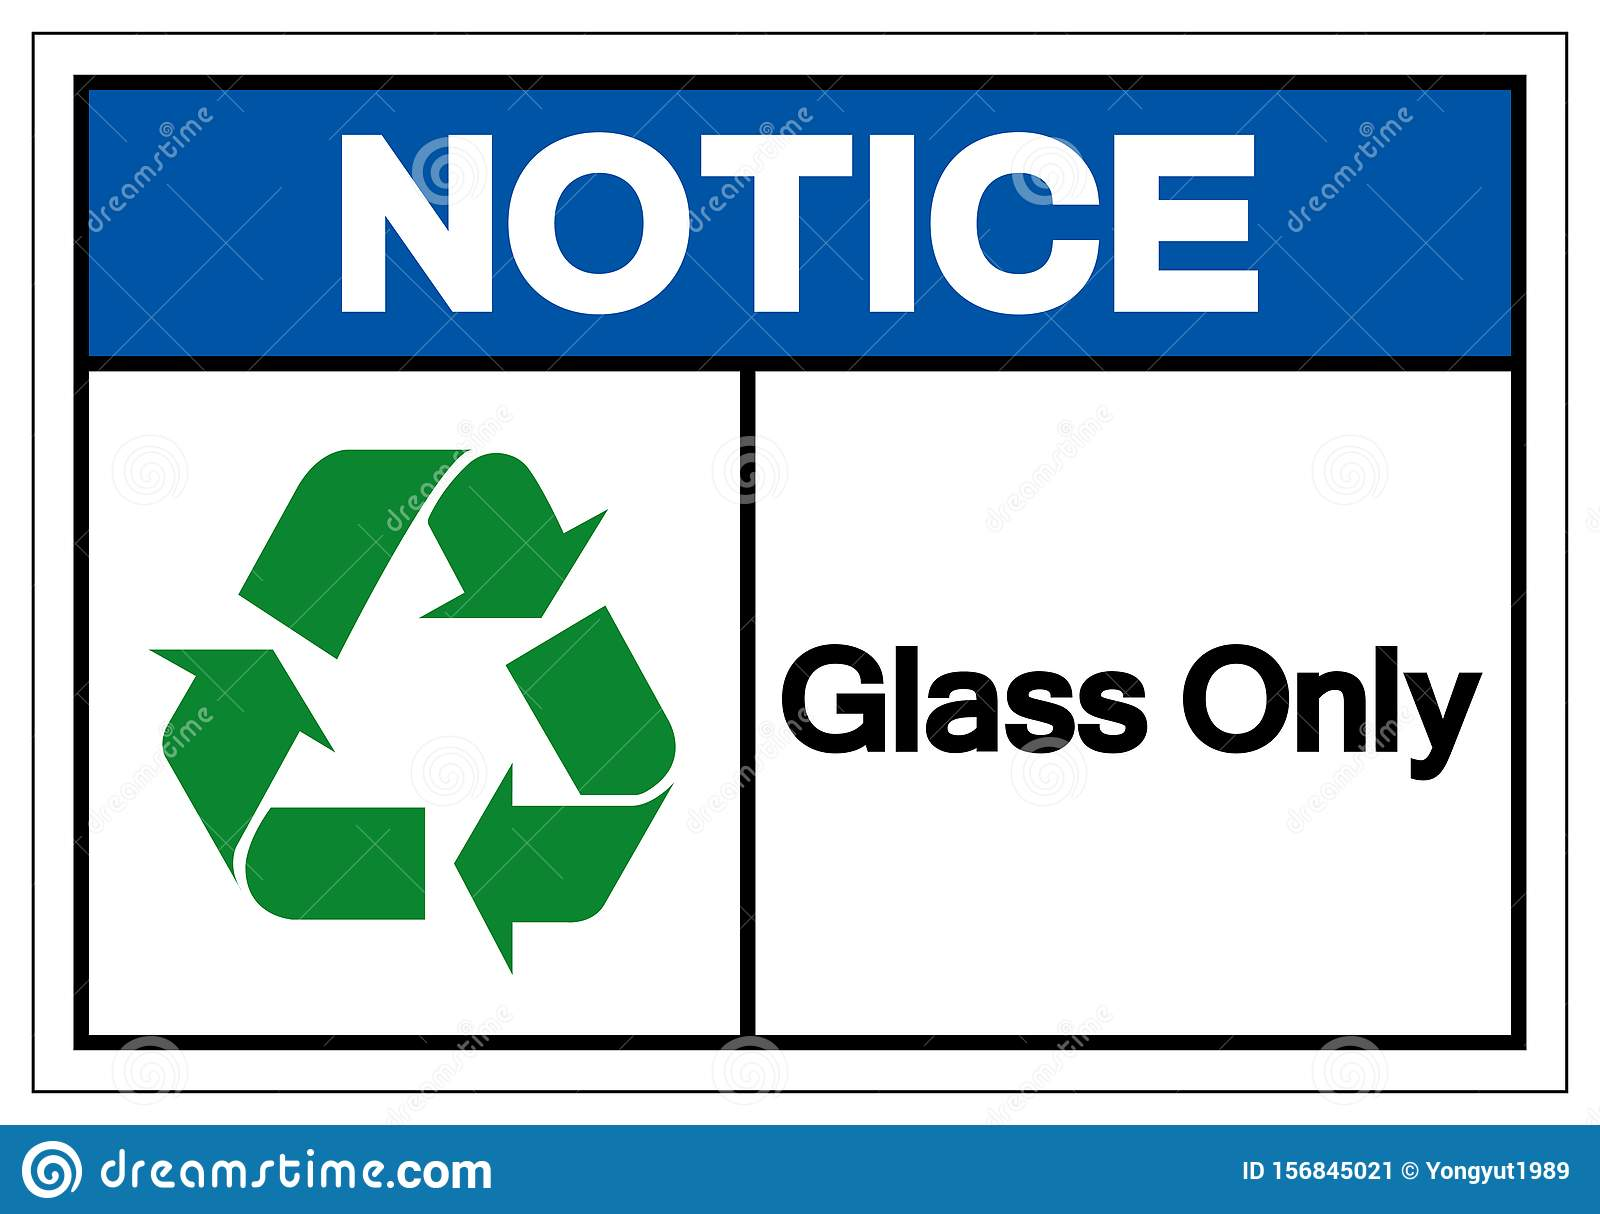 Notice Glass Only Symbol Sign ,Vector Illustration, Isolate On White Background Label .EPS10